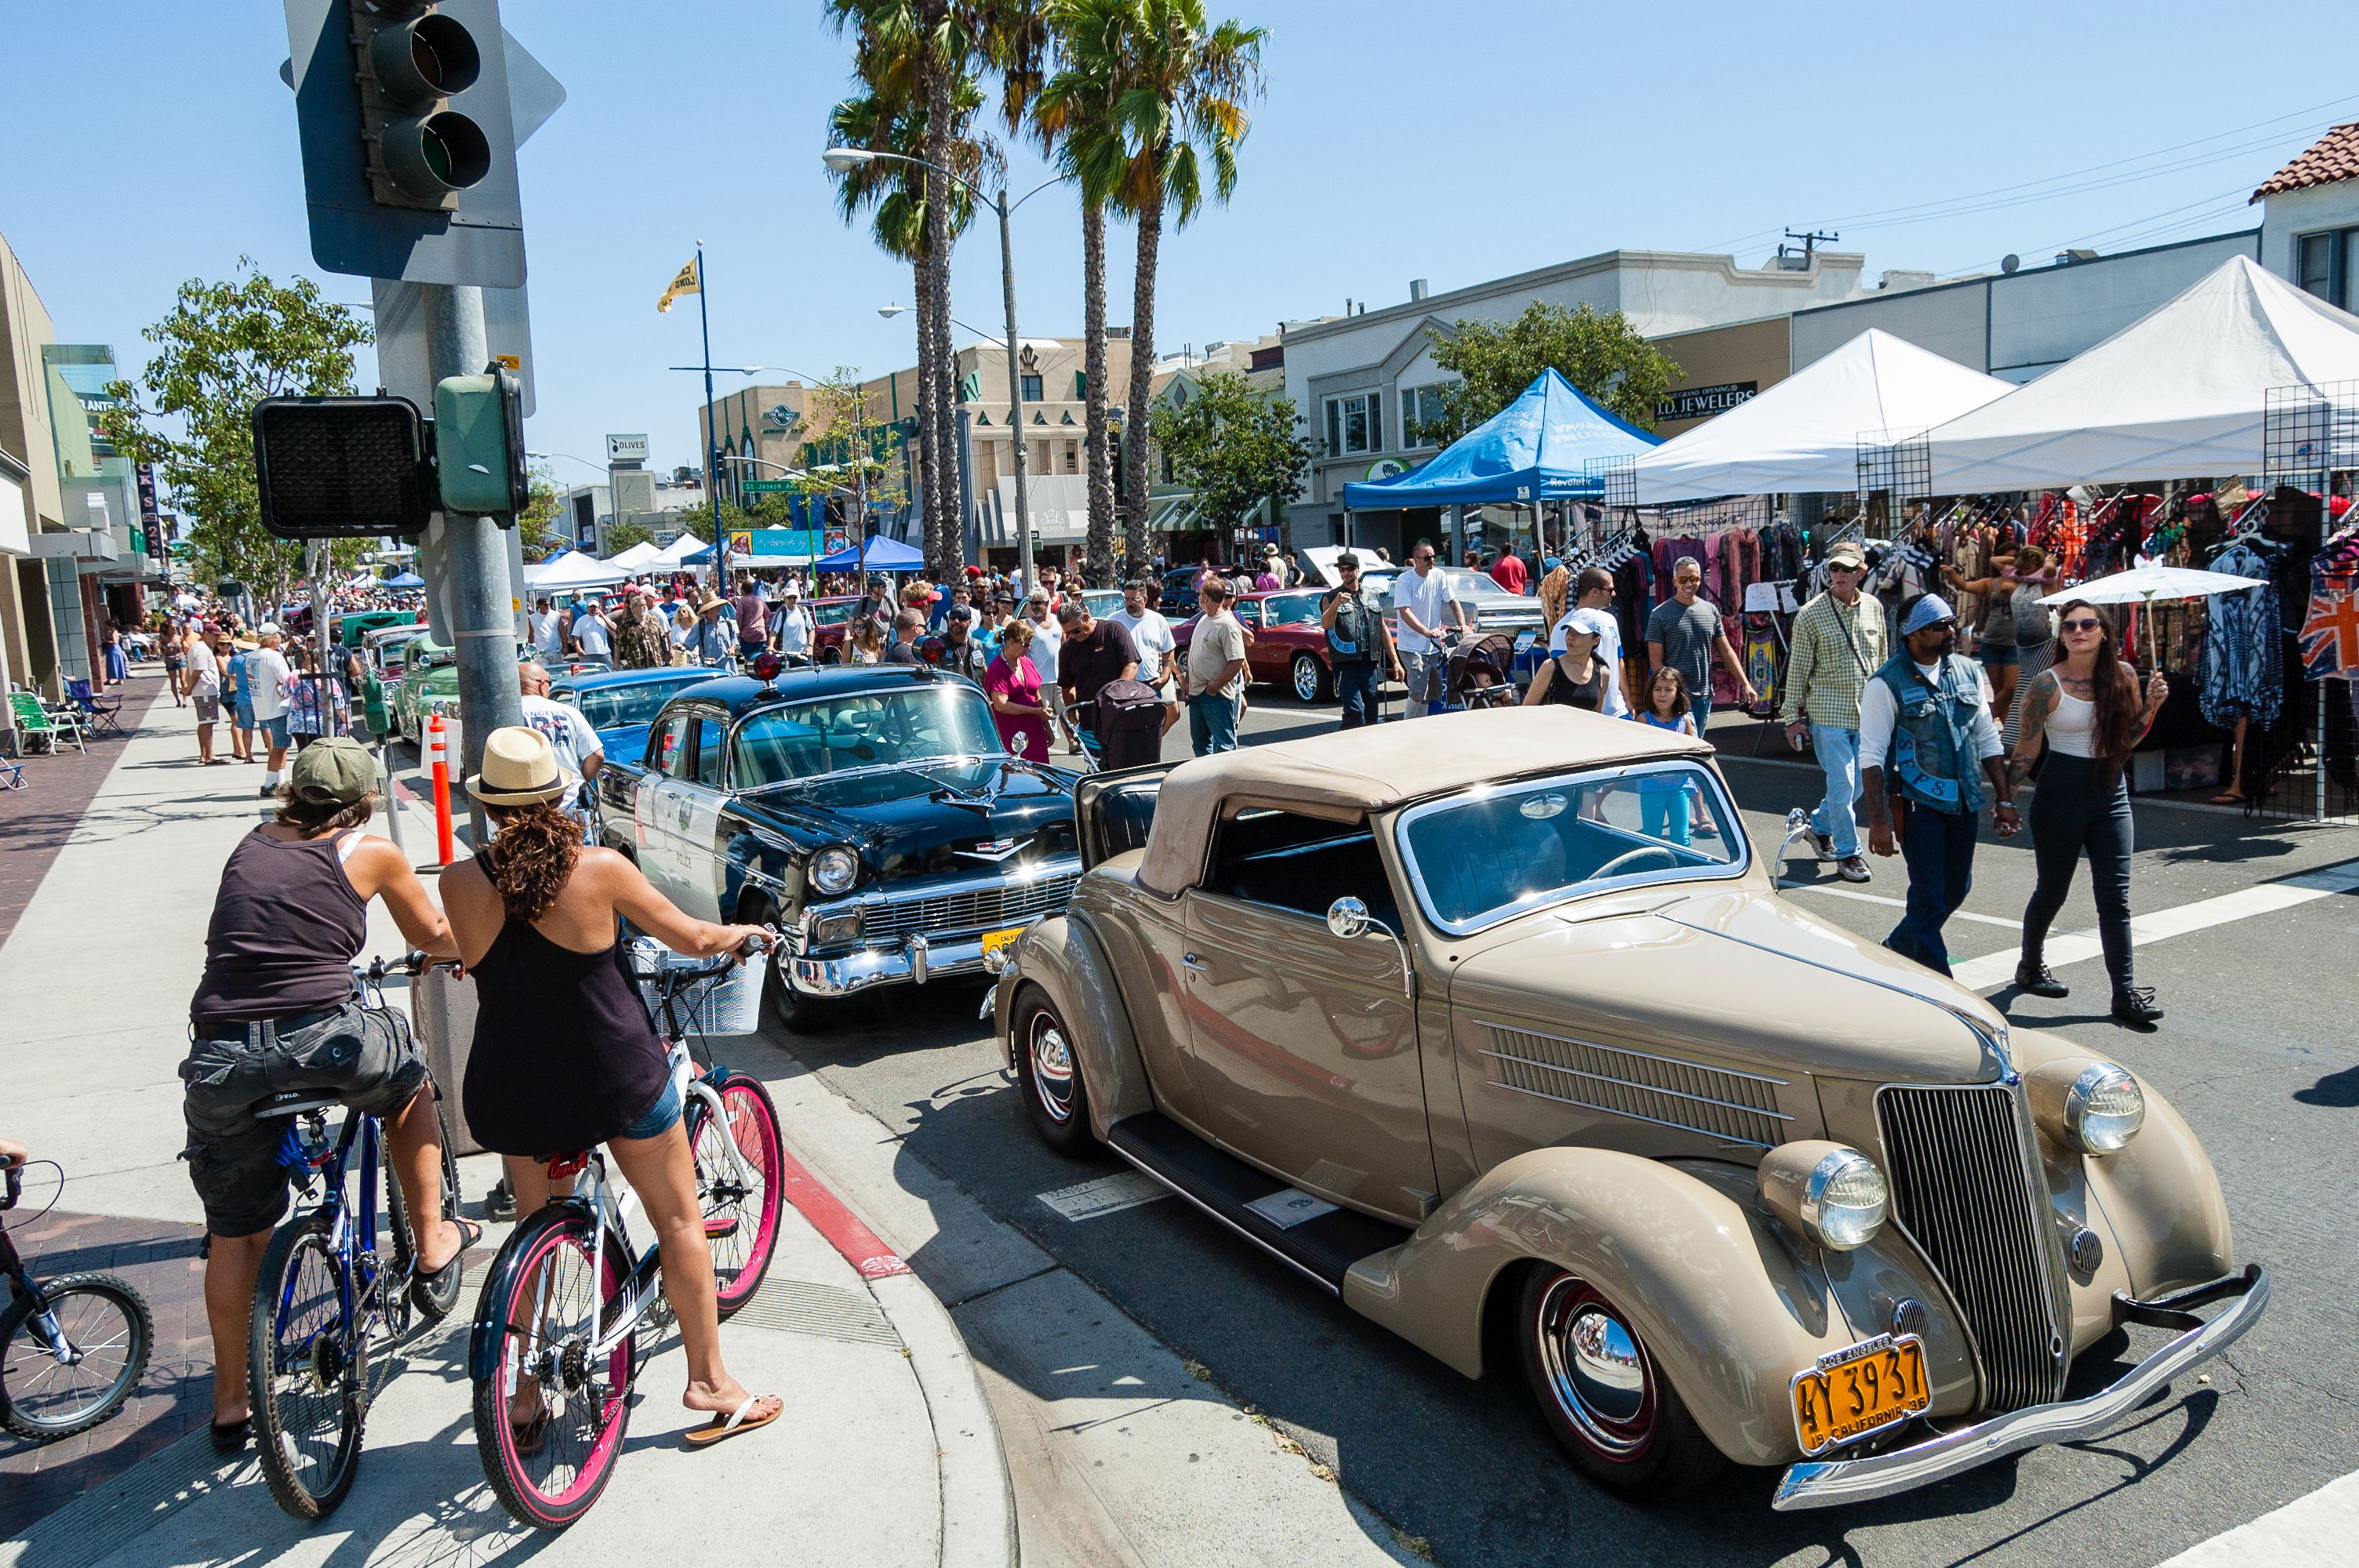 Annual Car Shows In Los Angeles - Classic car show california